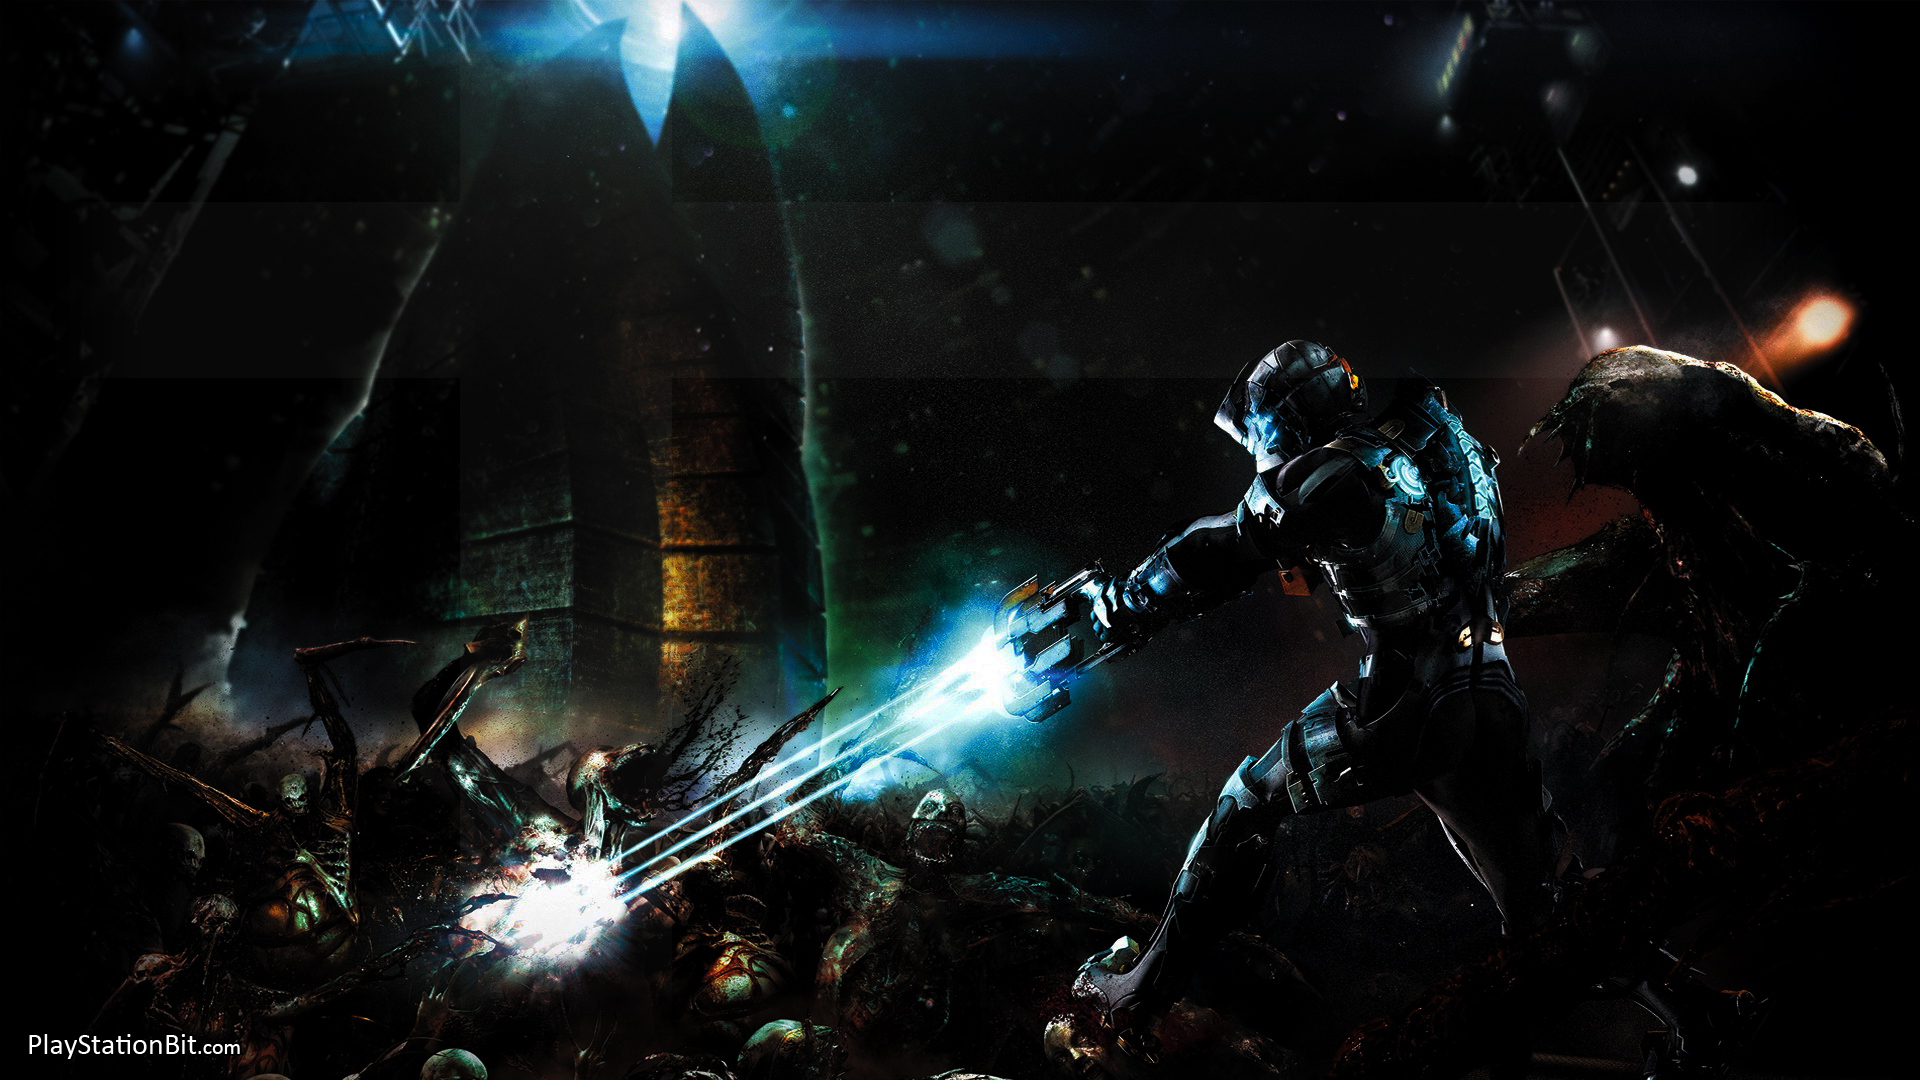 Dead space 3 1920x1080